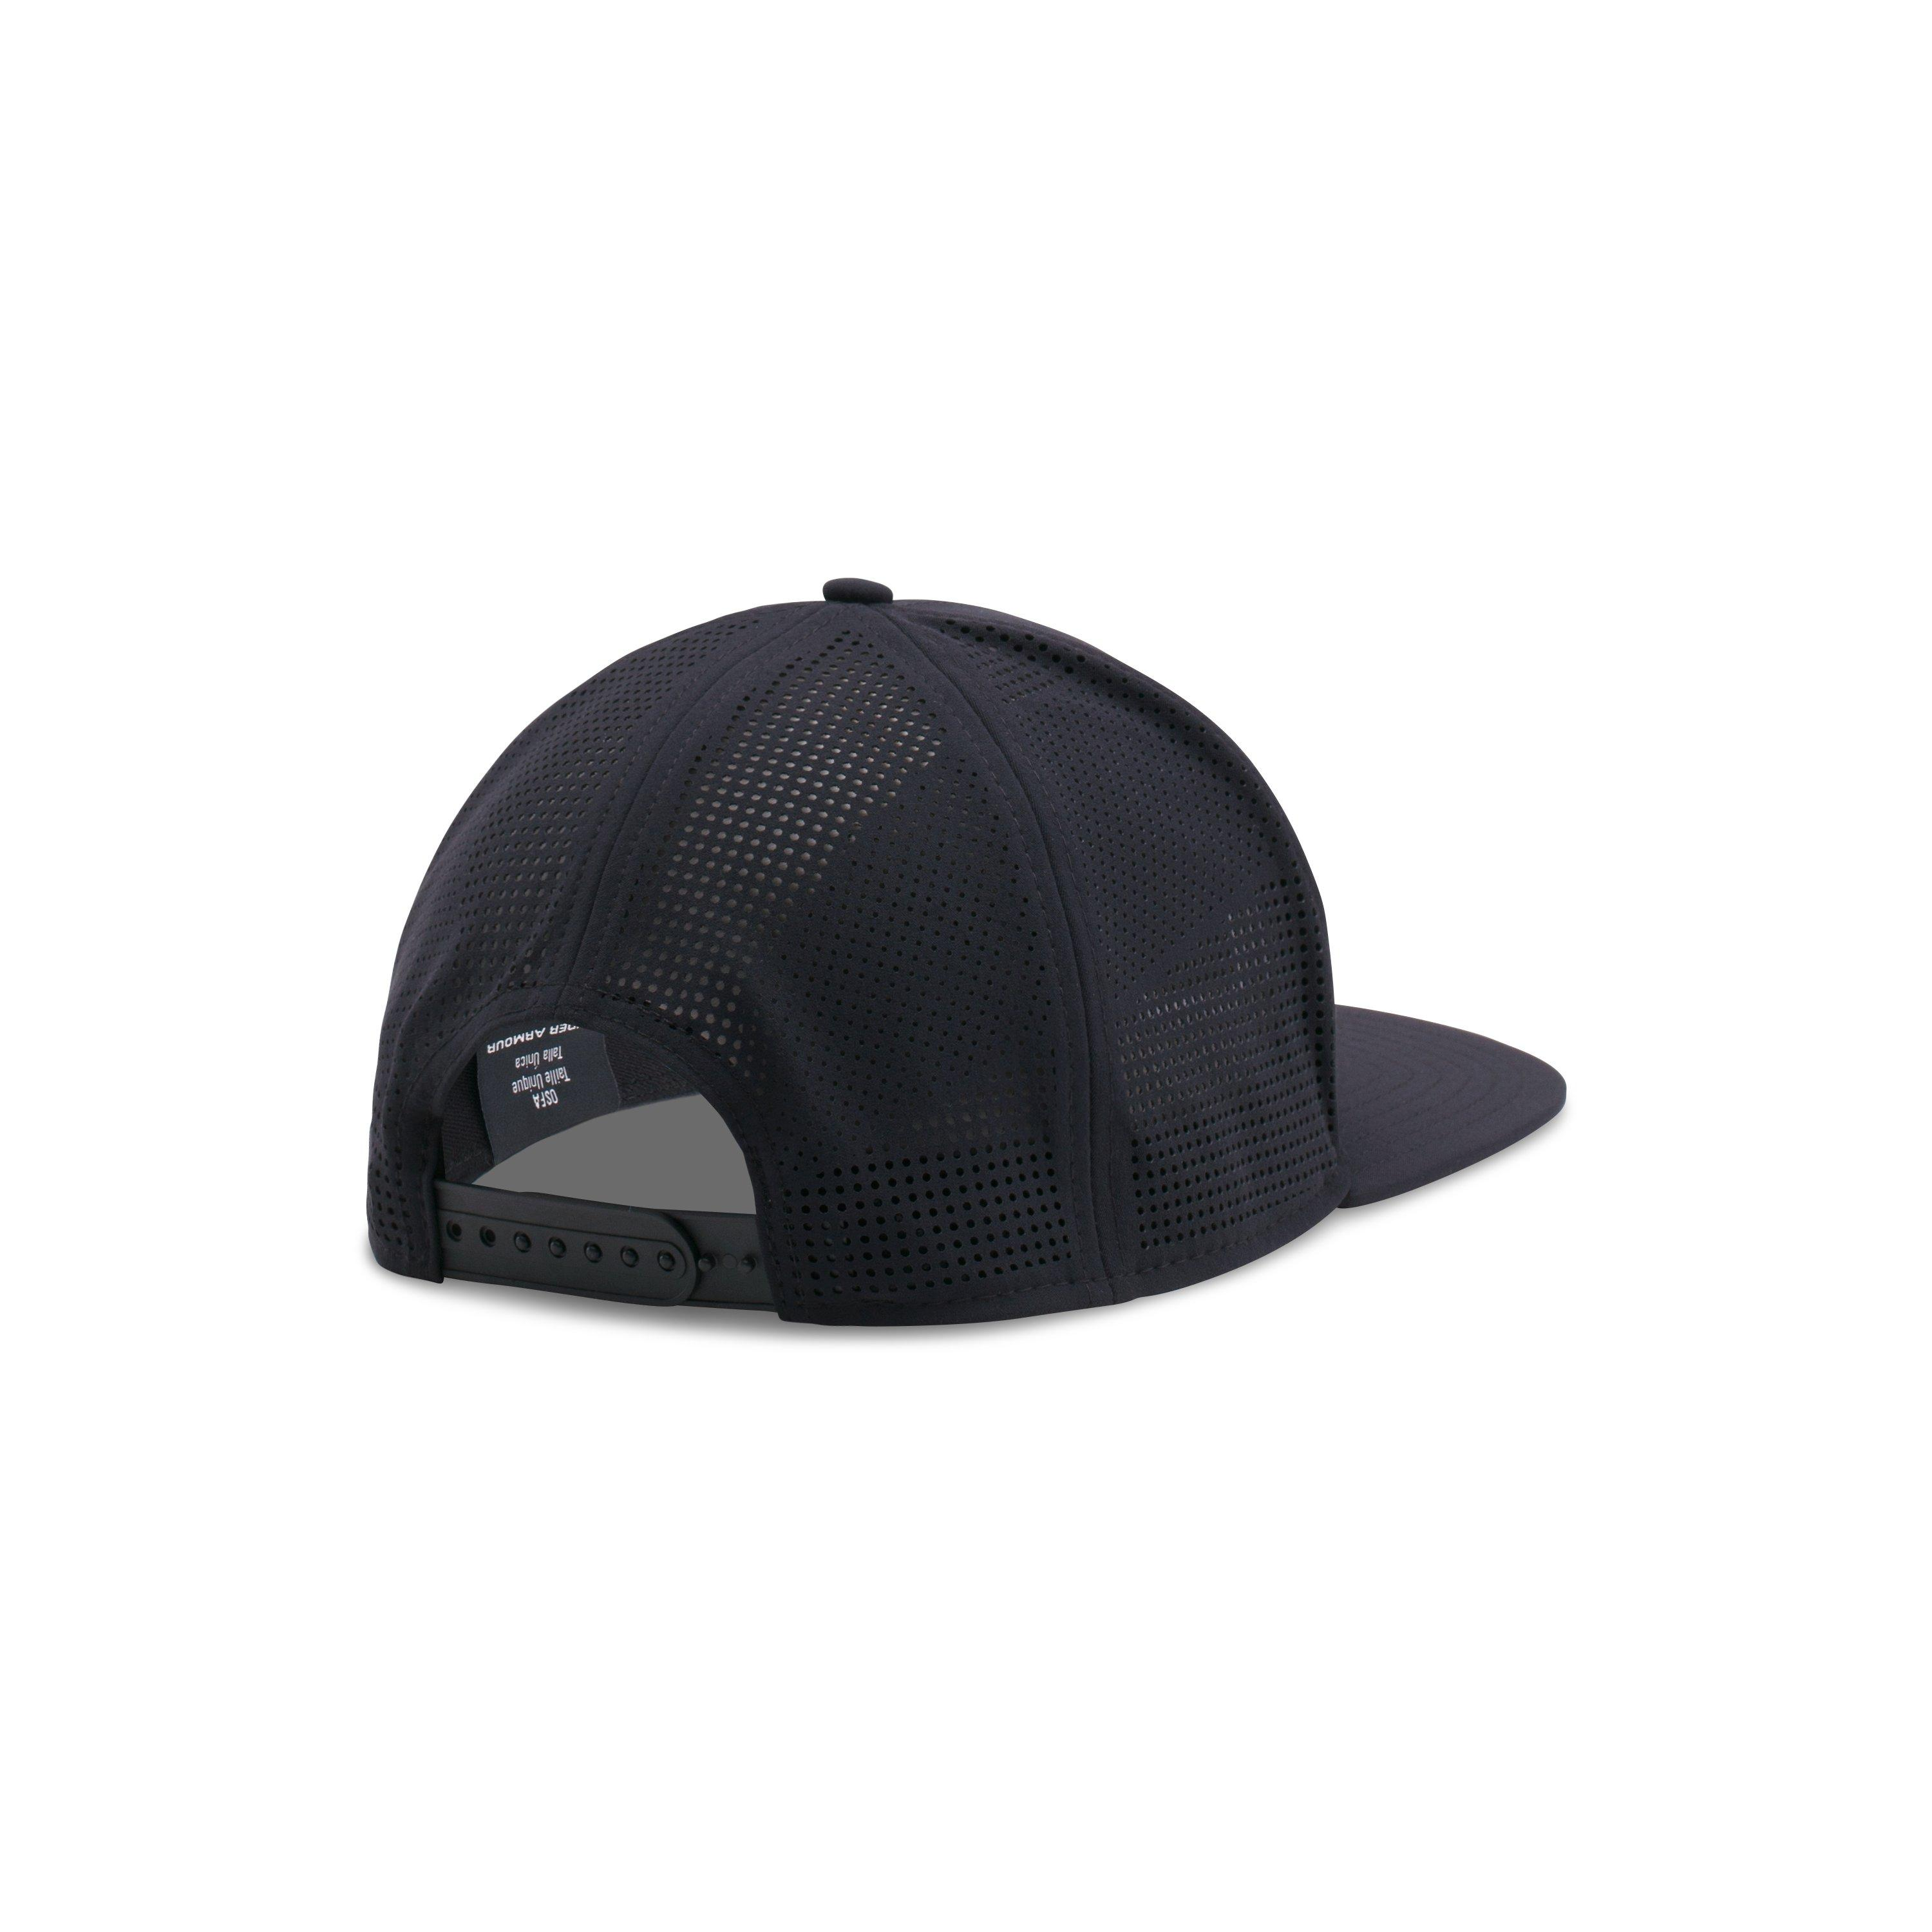 Lyst - Under Armour Ua X Project Rock Supervent Snapback Cap in ... 22f88e1dee9